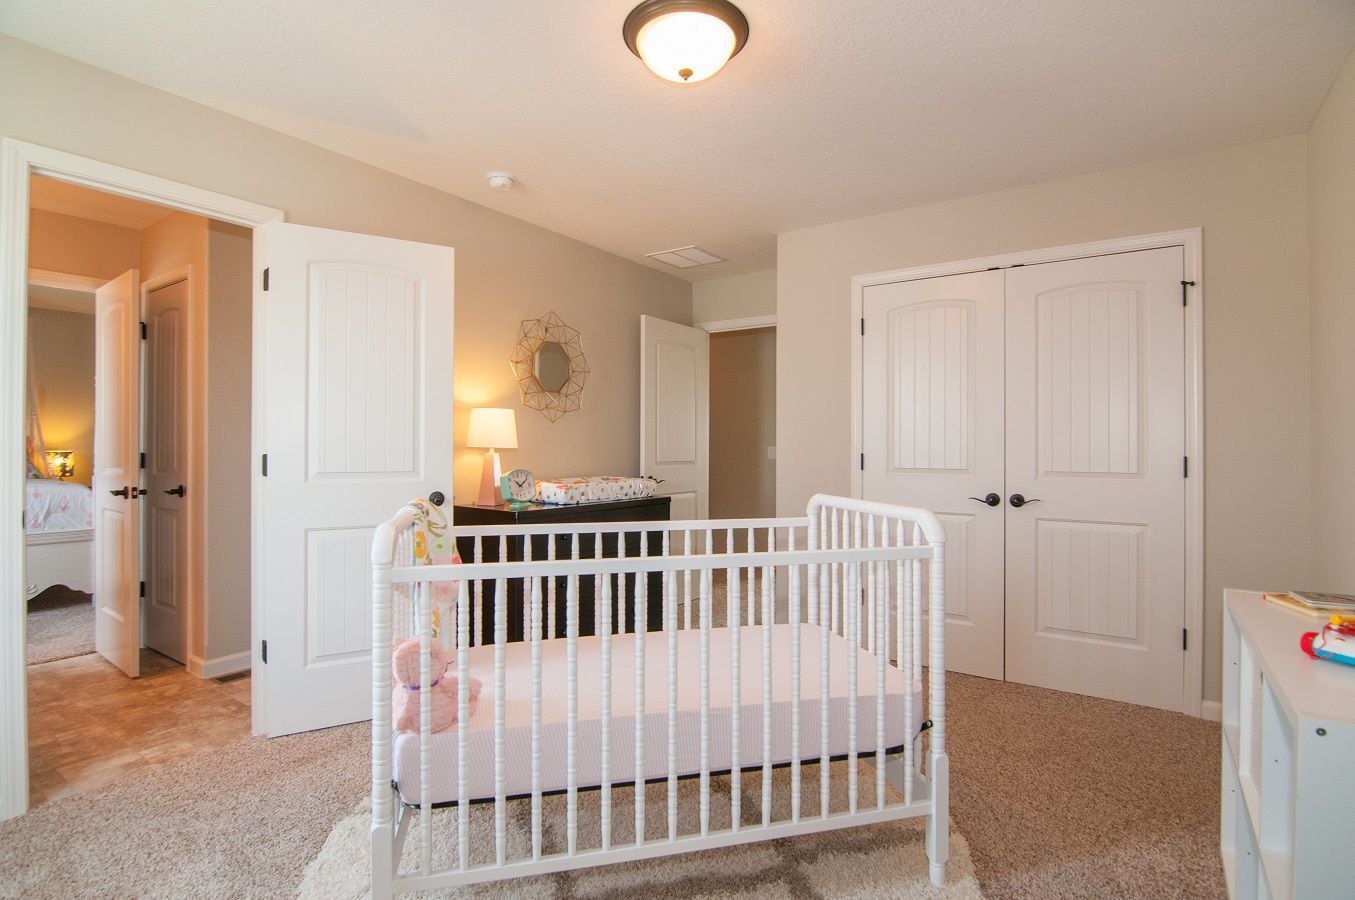 Bedroom featured in the Addison By D.R. Horton in Fort Wayne, IN